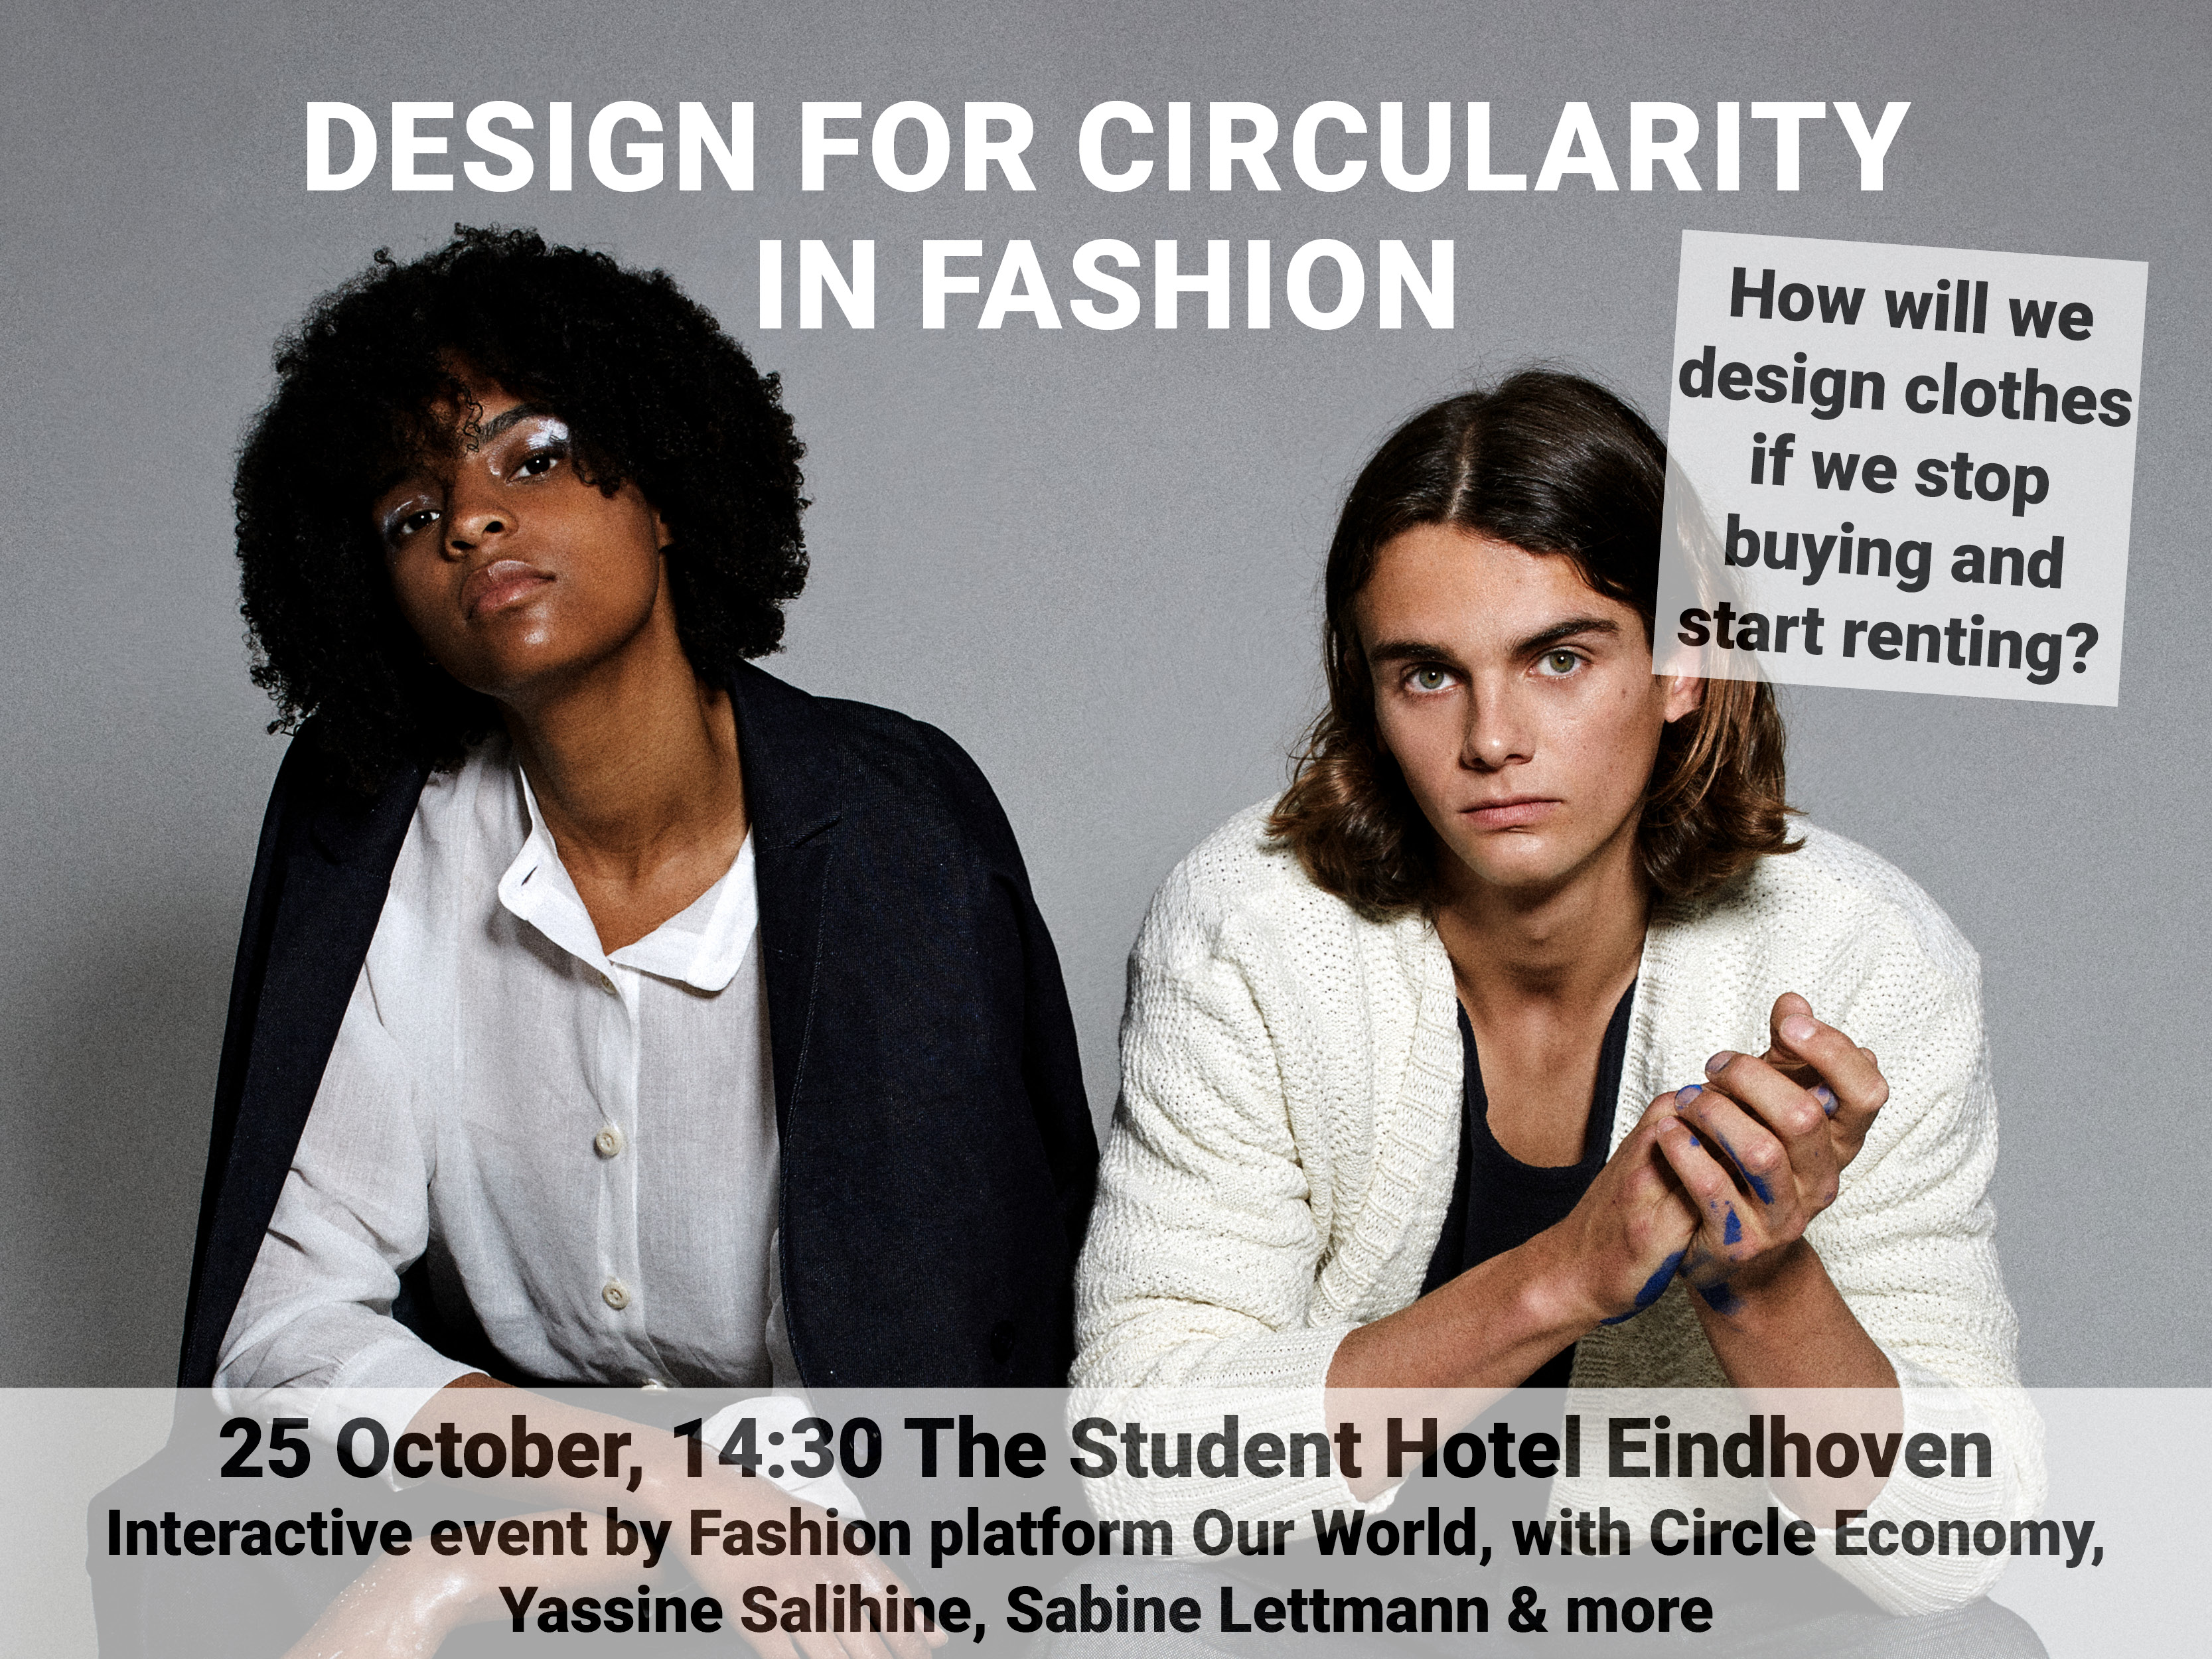 design-for-circularity-in-fashion-landscap